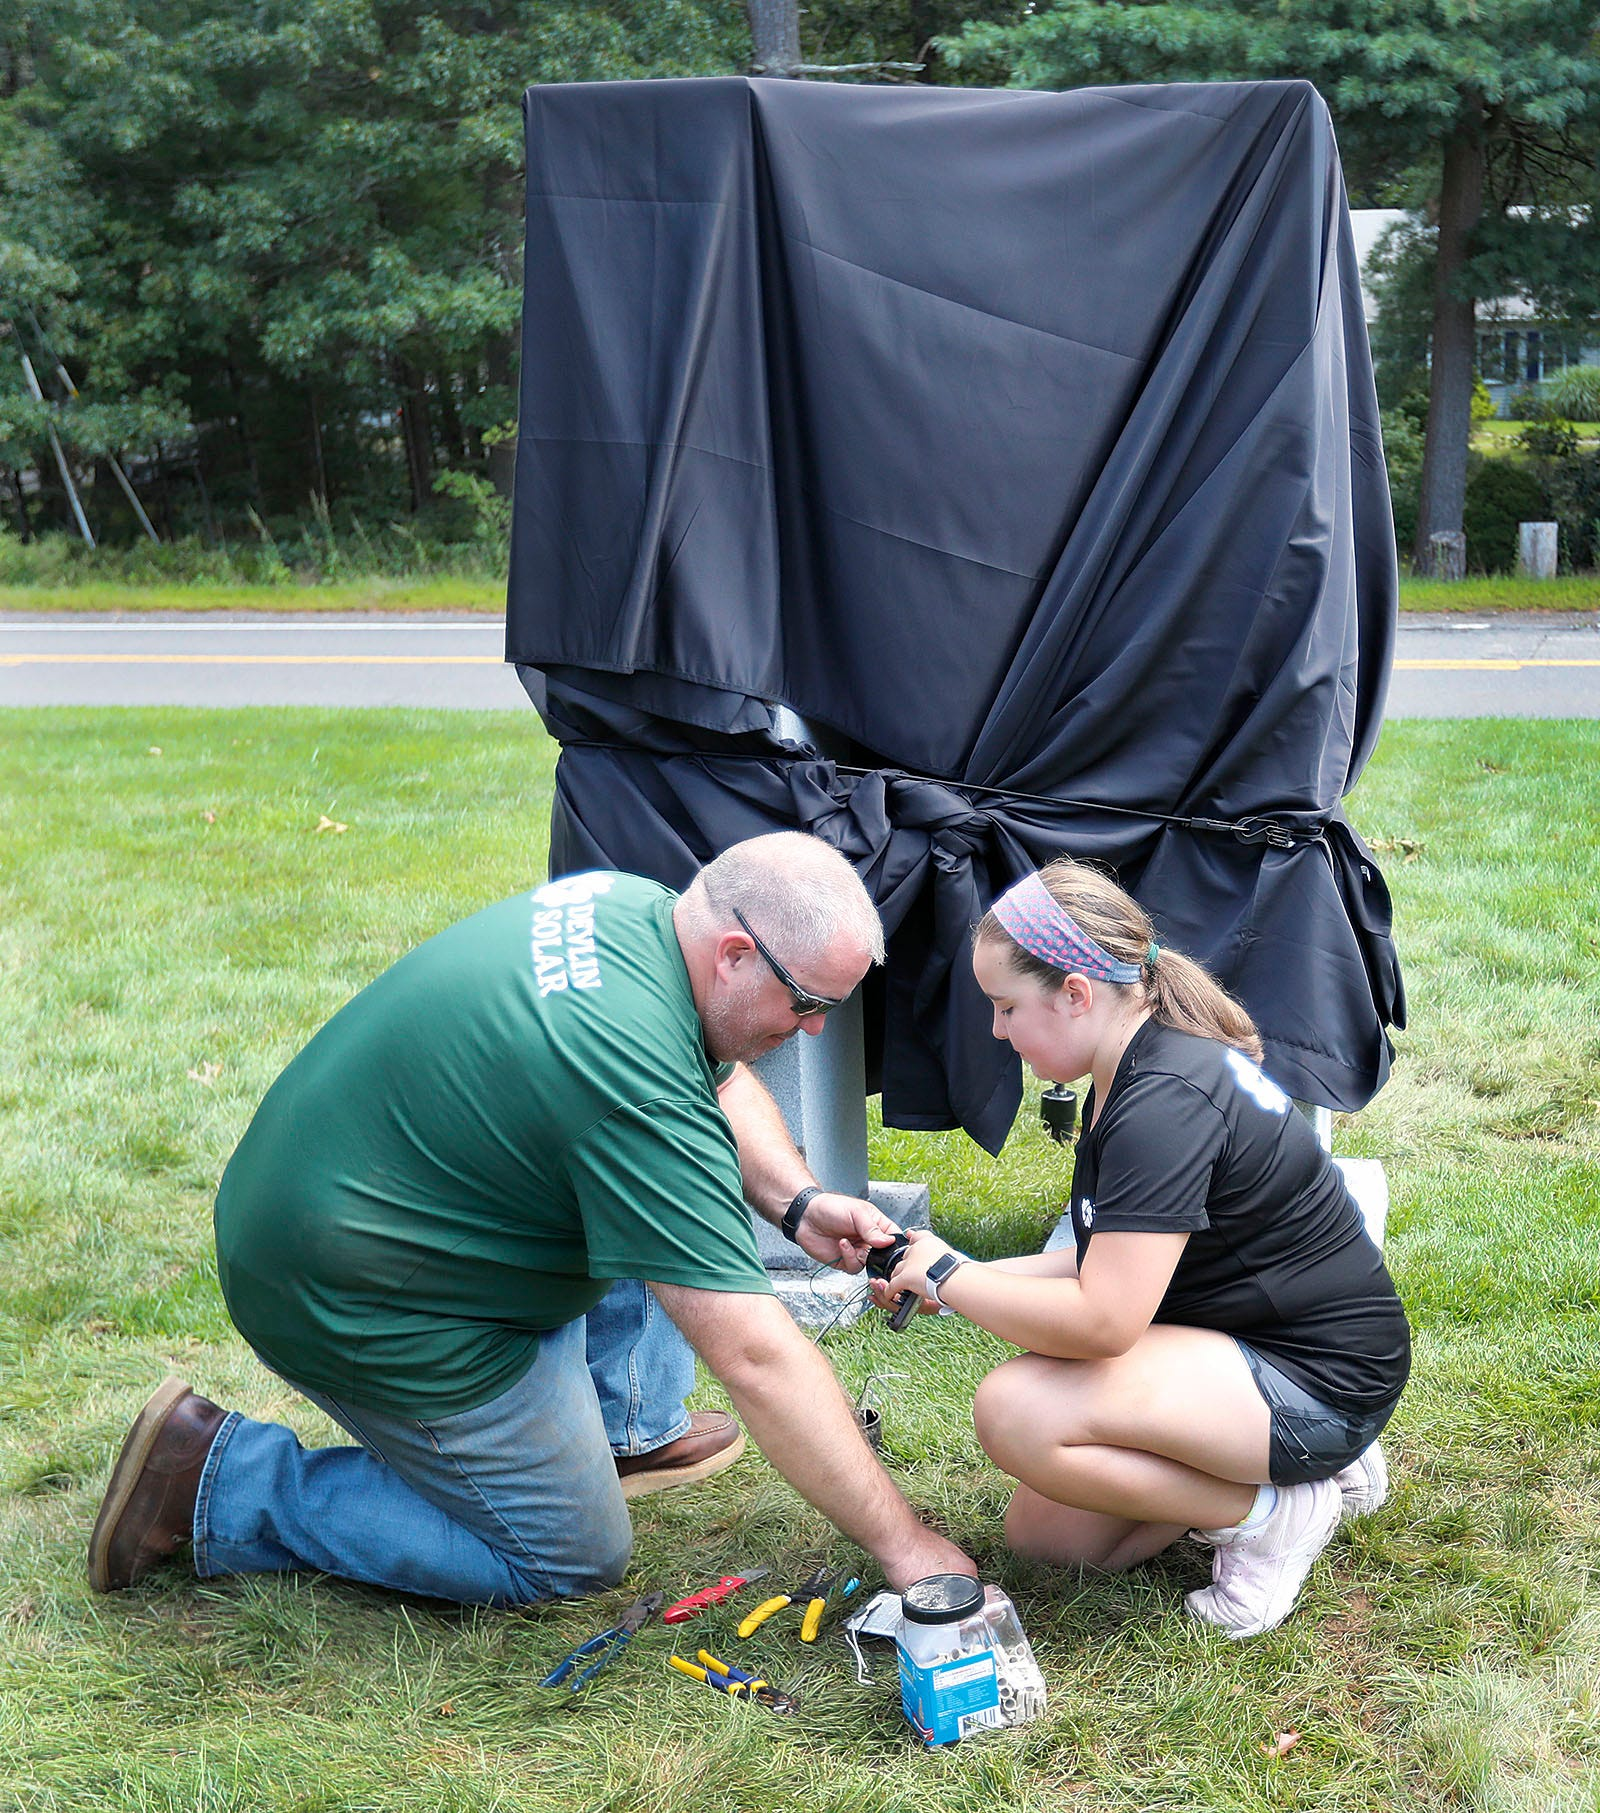 Lighting specialist Matt Devlin and daughter Megan, 12, work on a  9/11 memorial outside the Duxbury Fire Department headquarters on Tremont Street. The memorial will be unveiled Saturday, Sept. 11 at 8:20 a.m.